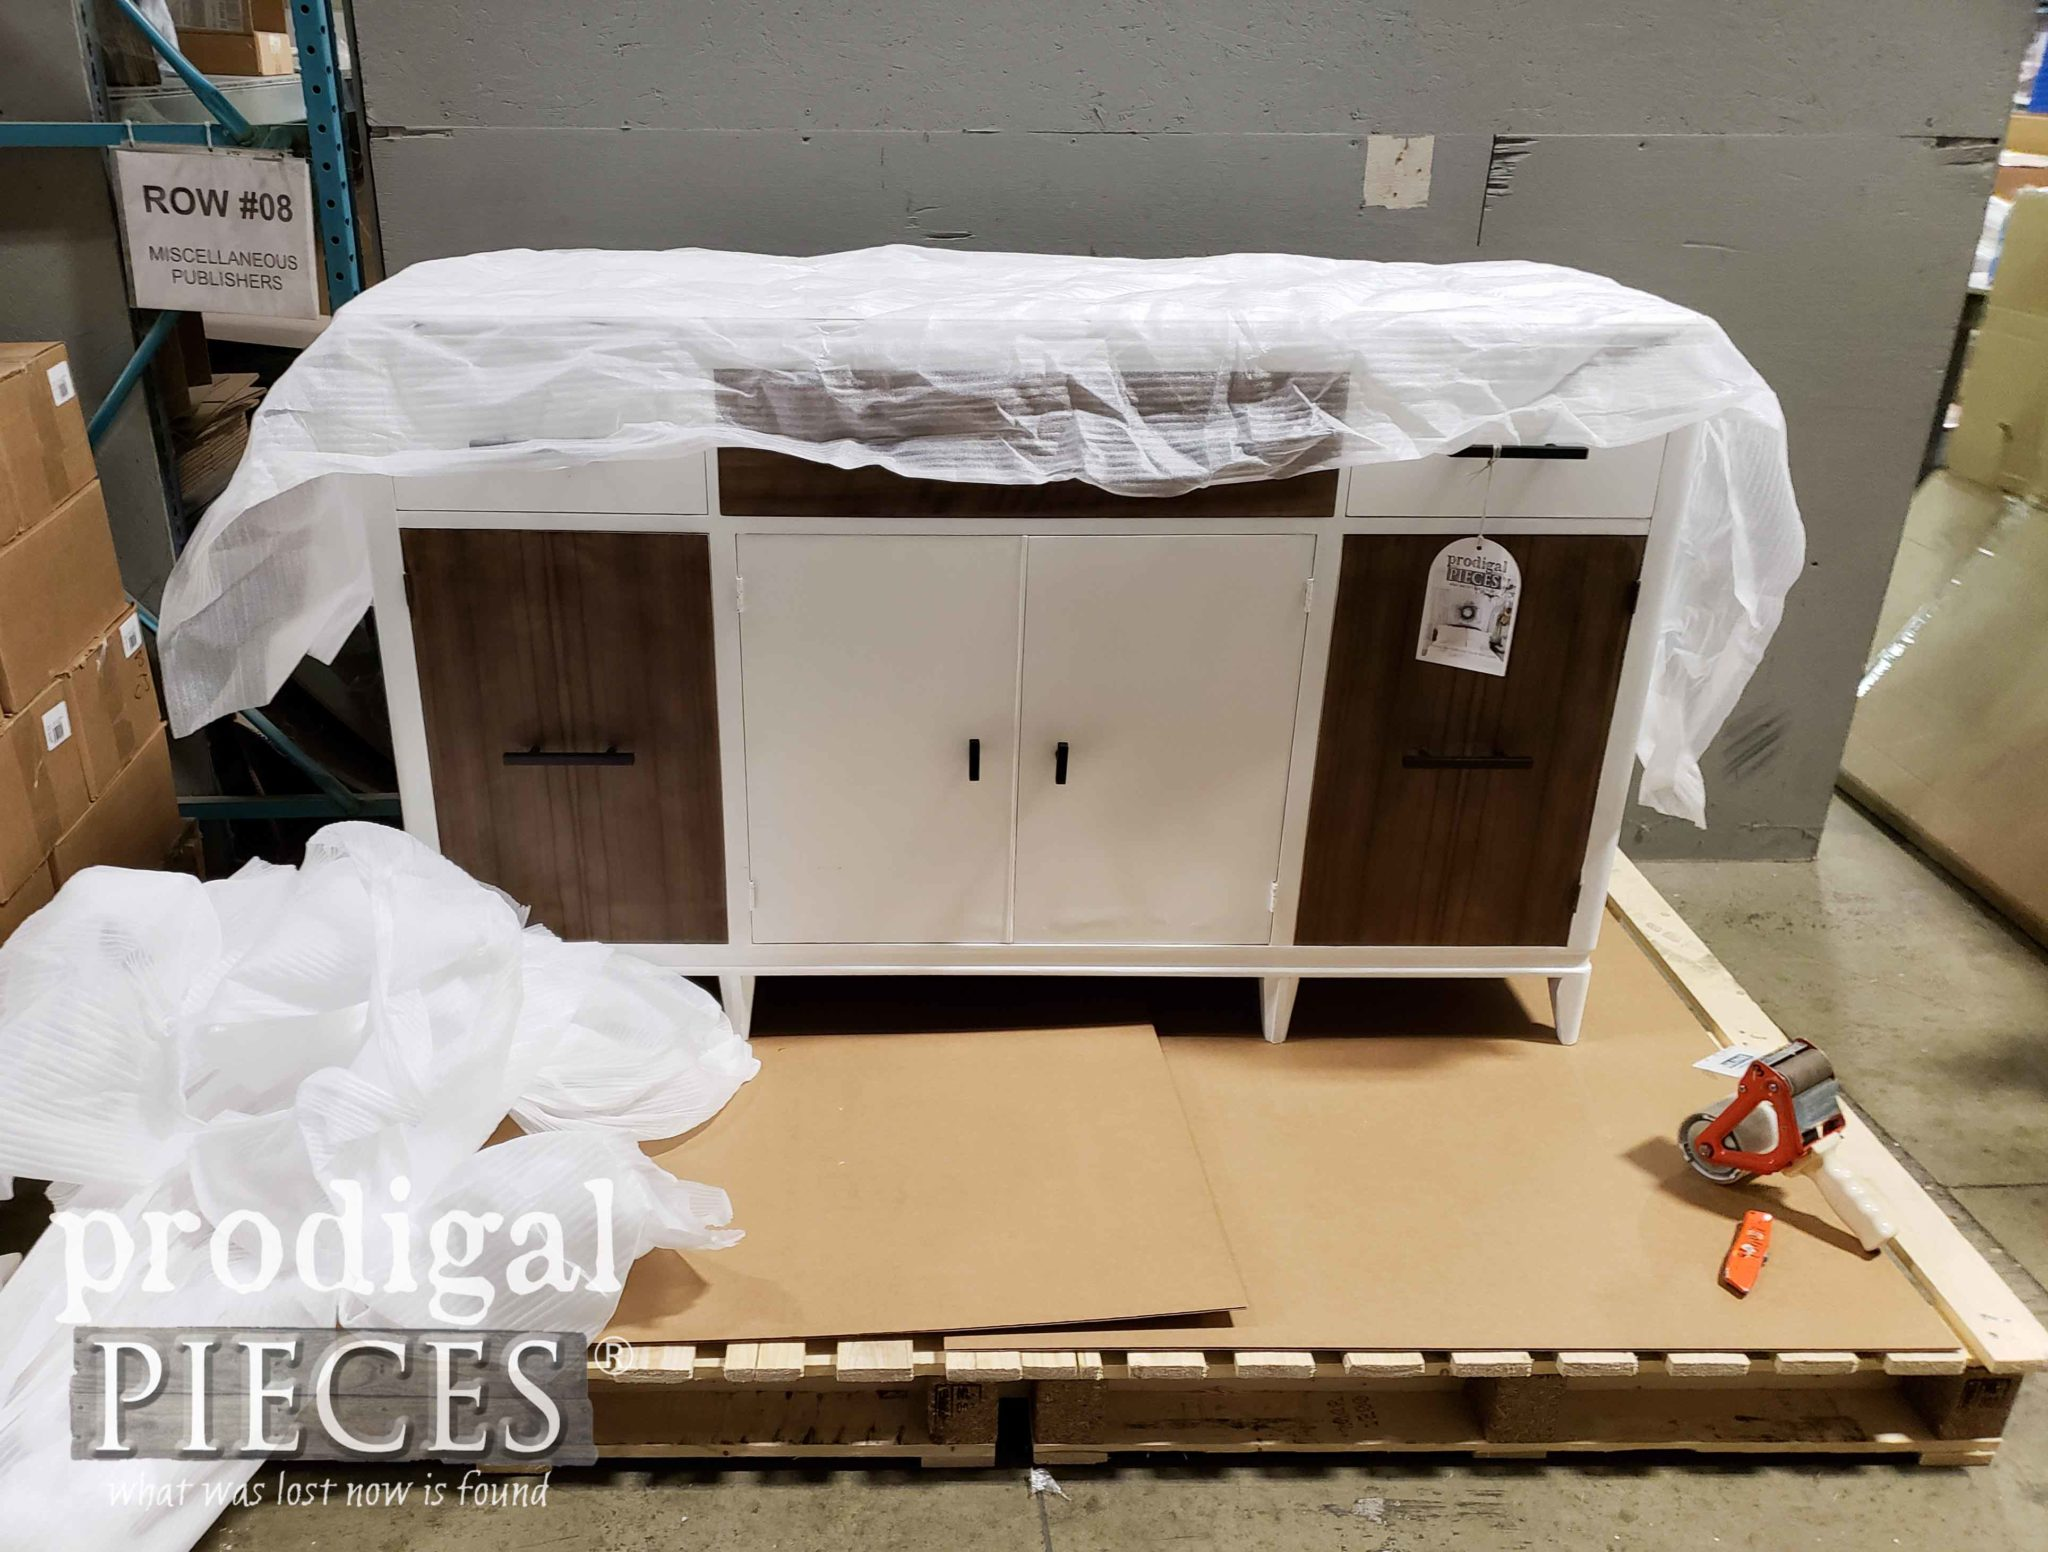 Buffet Ready to Ship | prodigalpieces.com